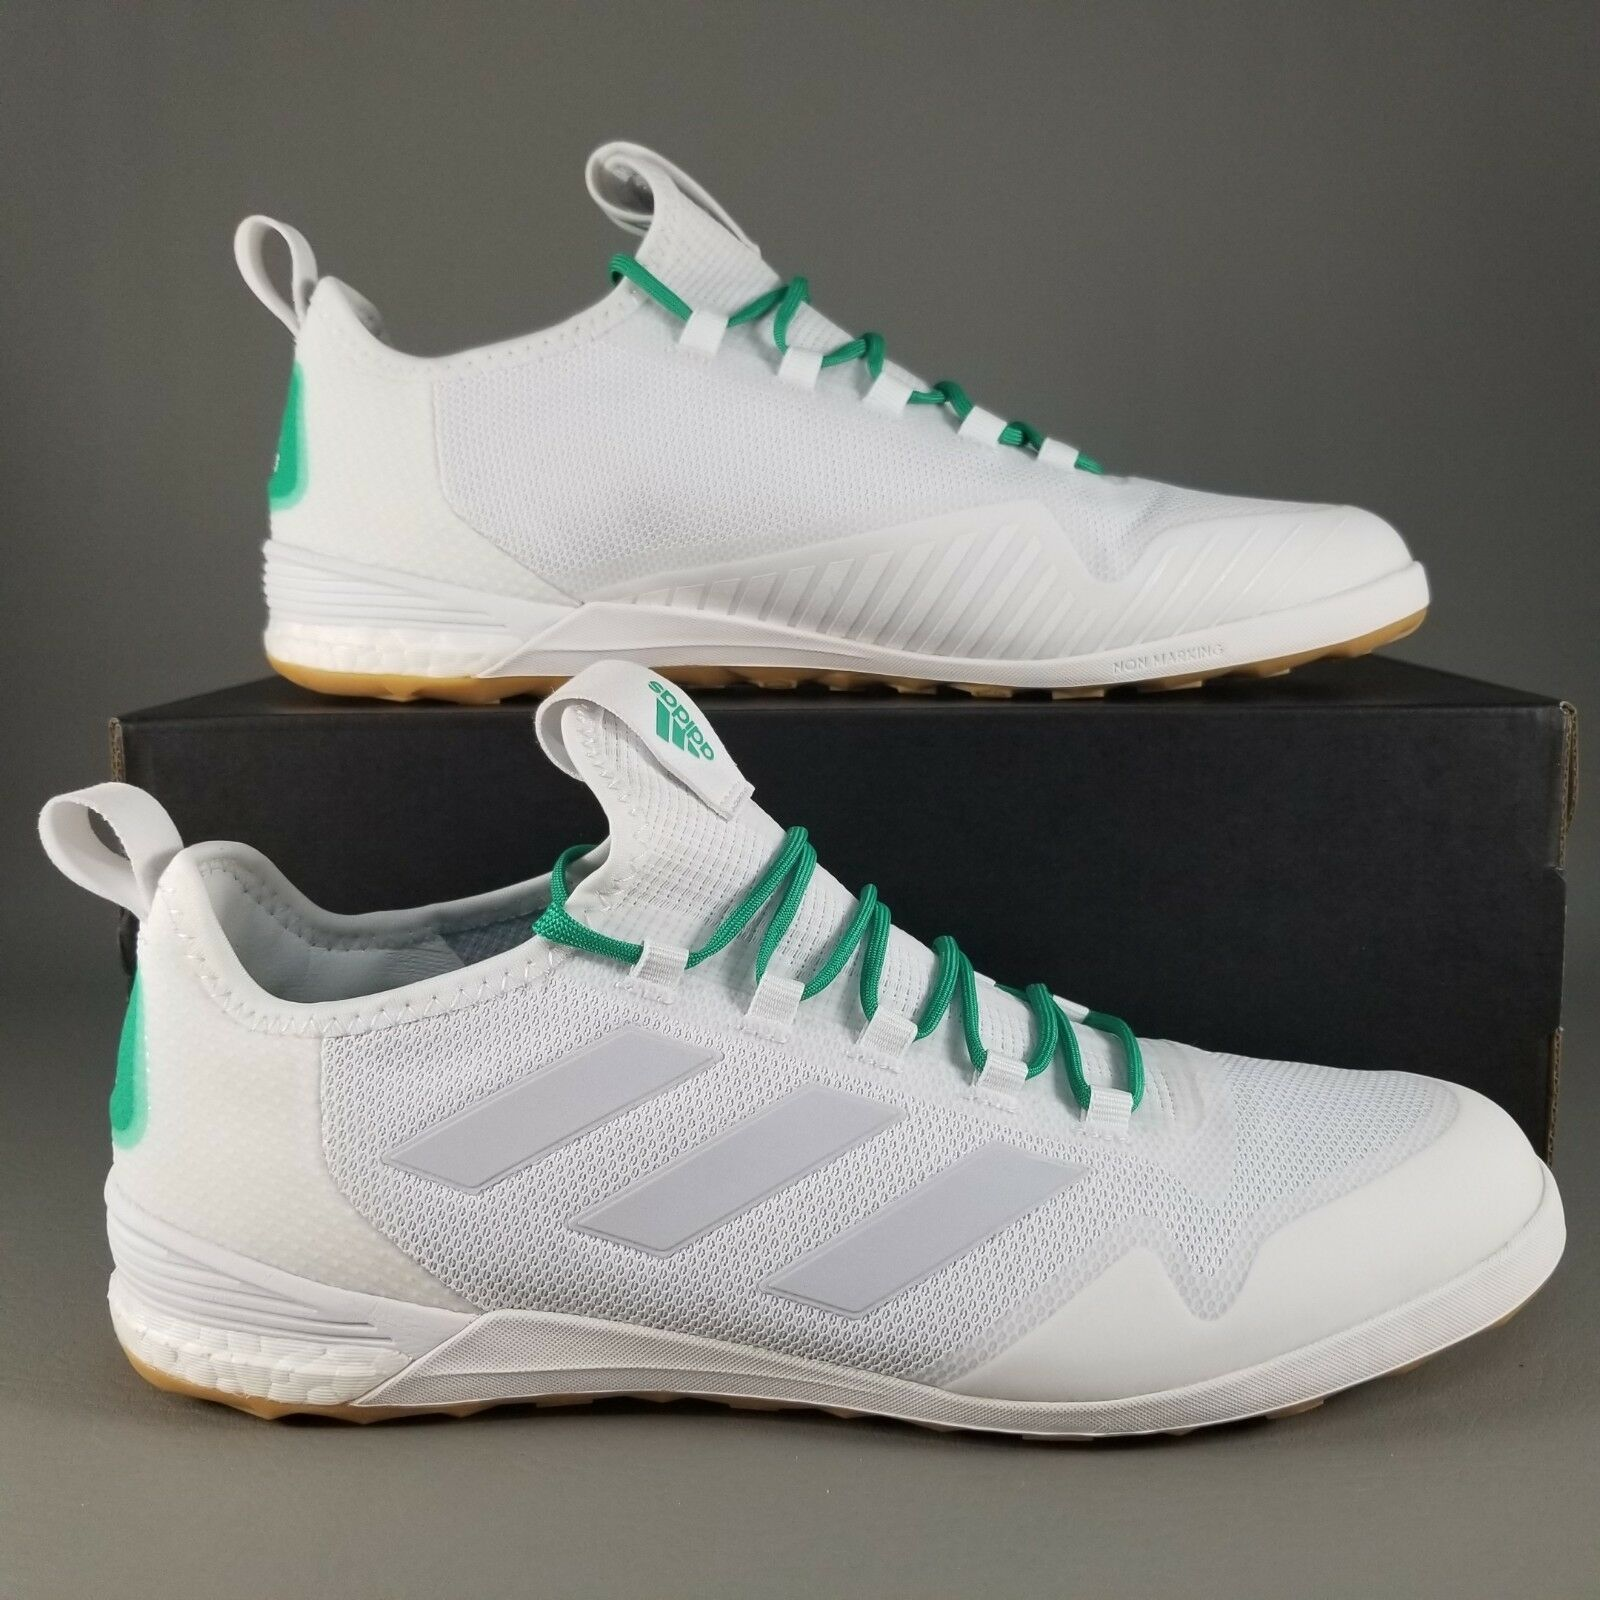 0fba7f157 adidas Ace Tango 17.1 IN Indoor Soccer Cleats Size 9.5 Boots White Green  Mens